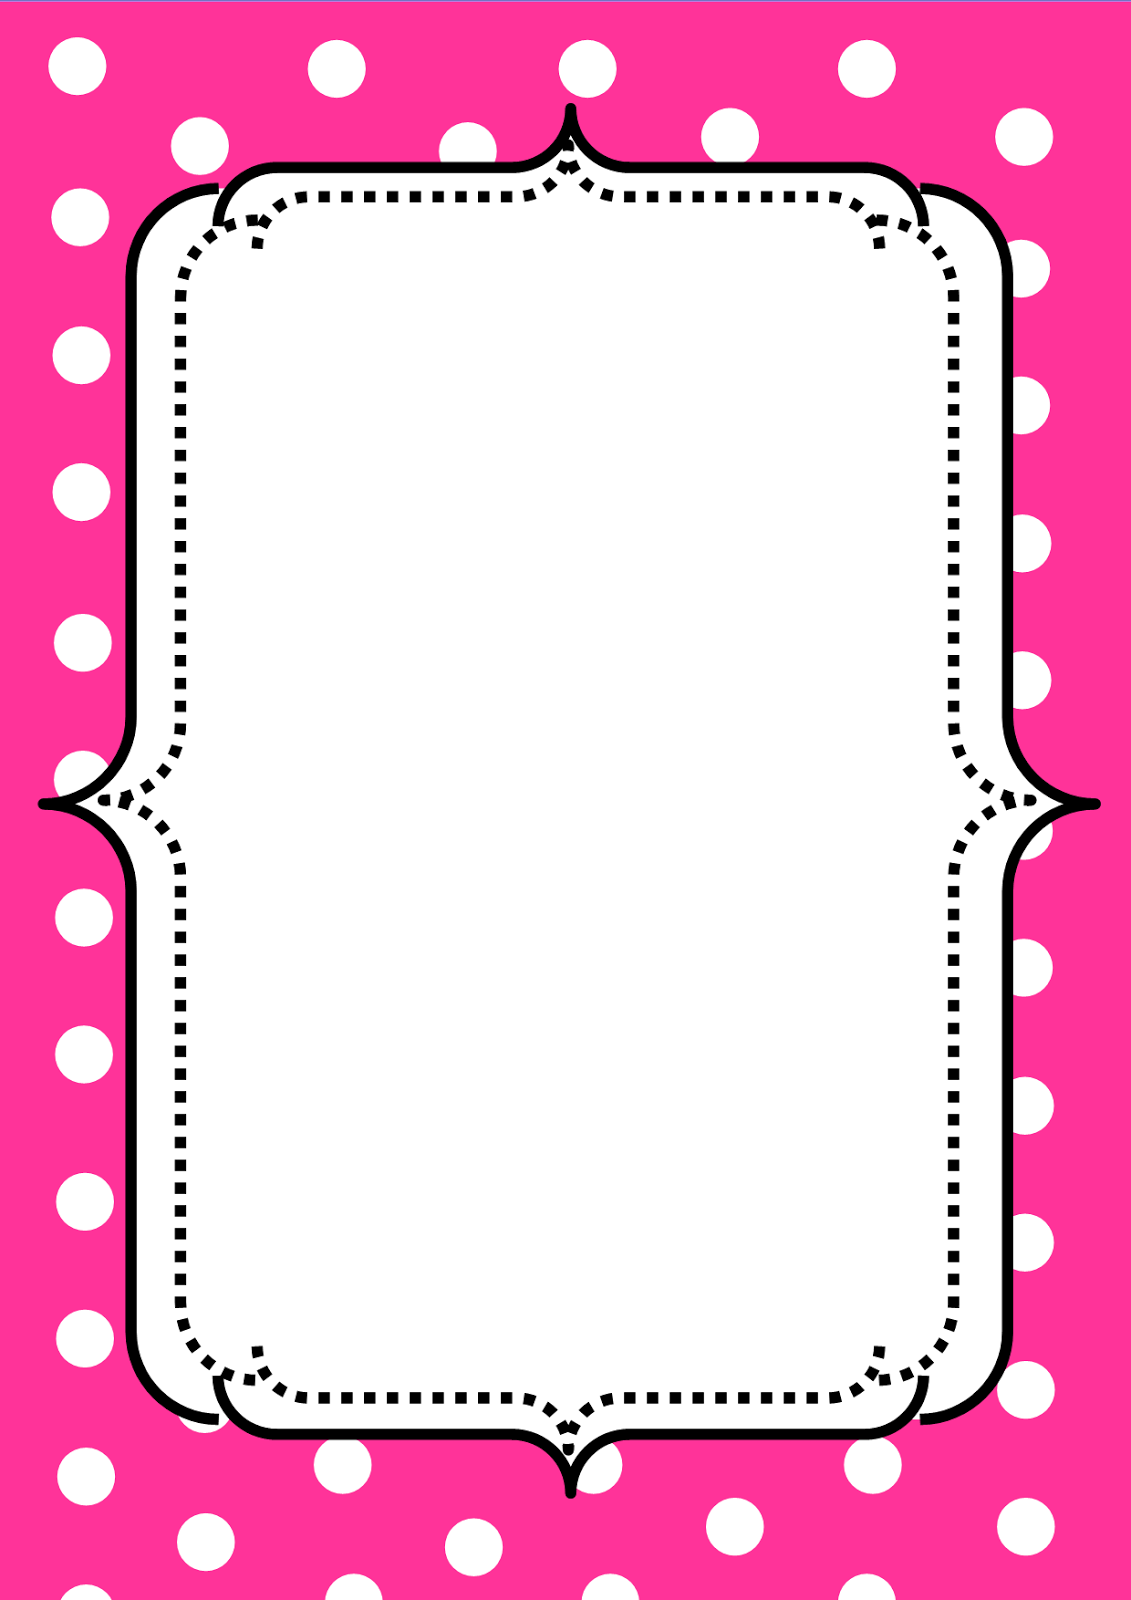 Border Clipart For Teachers Microsoft Word - ClipArt Best